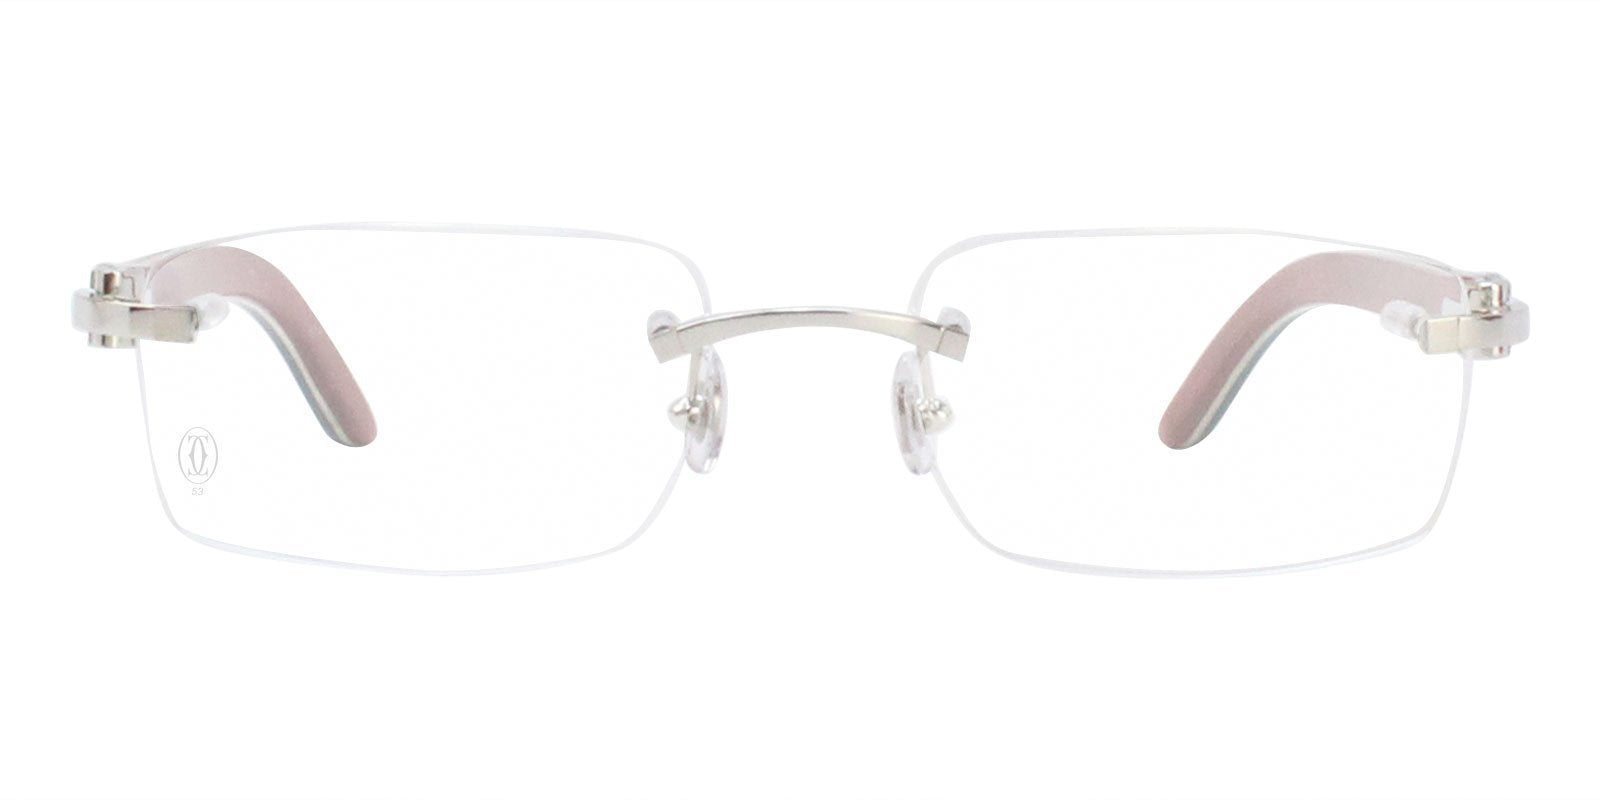 Cartier - C Decor Blue Silver Rimless Unisex Eyeglasses - 53mm-Eyeglasses-Designer Eyes